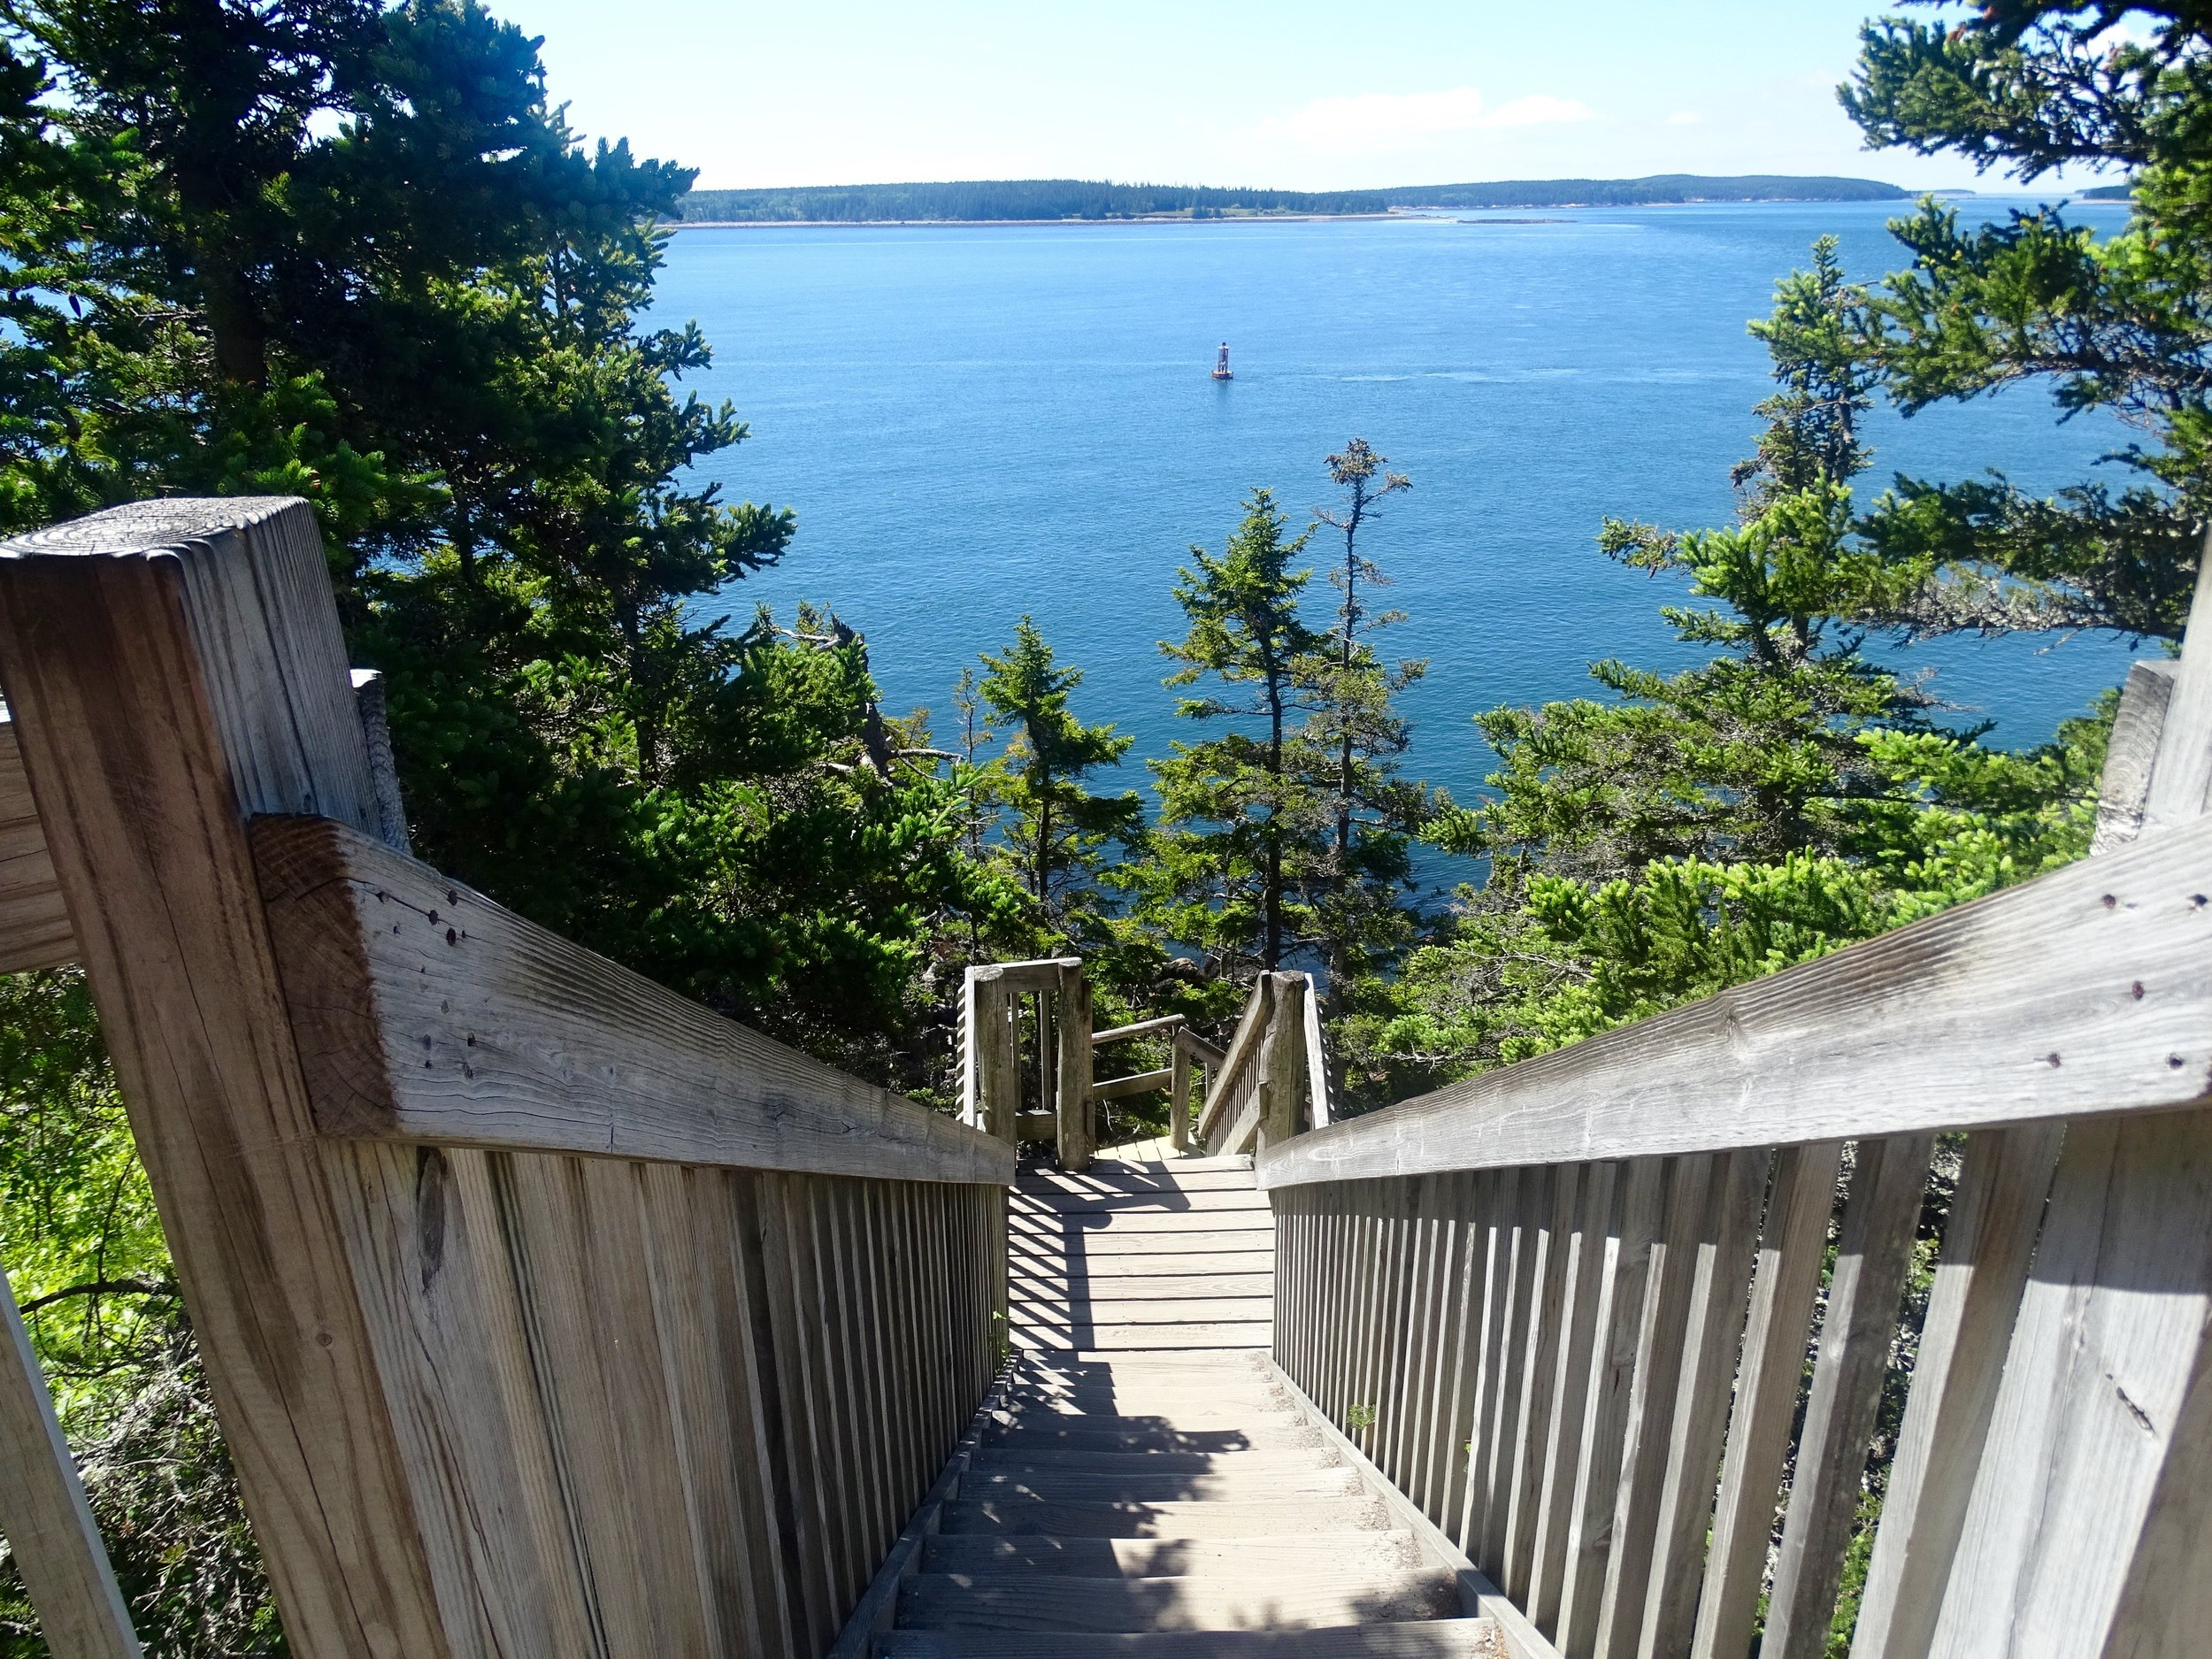 The very steep staircase down to a very rocky path to see the lighthouse. Little ones are better off taking the paved path on the right end of the parking lot.